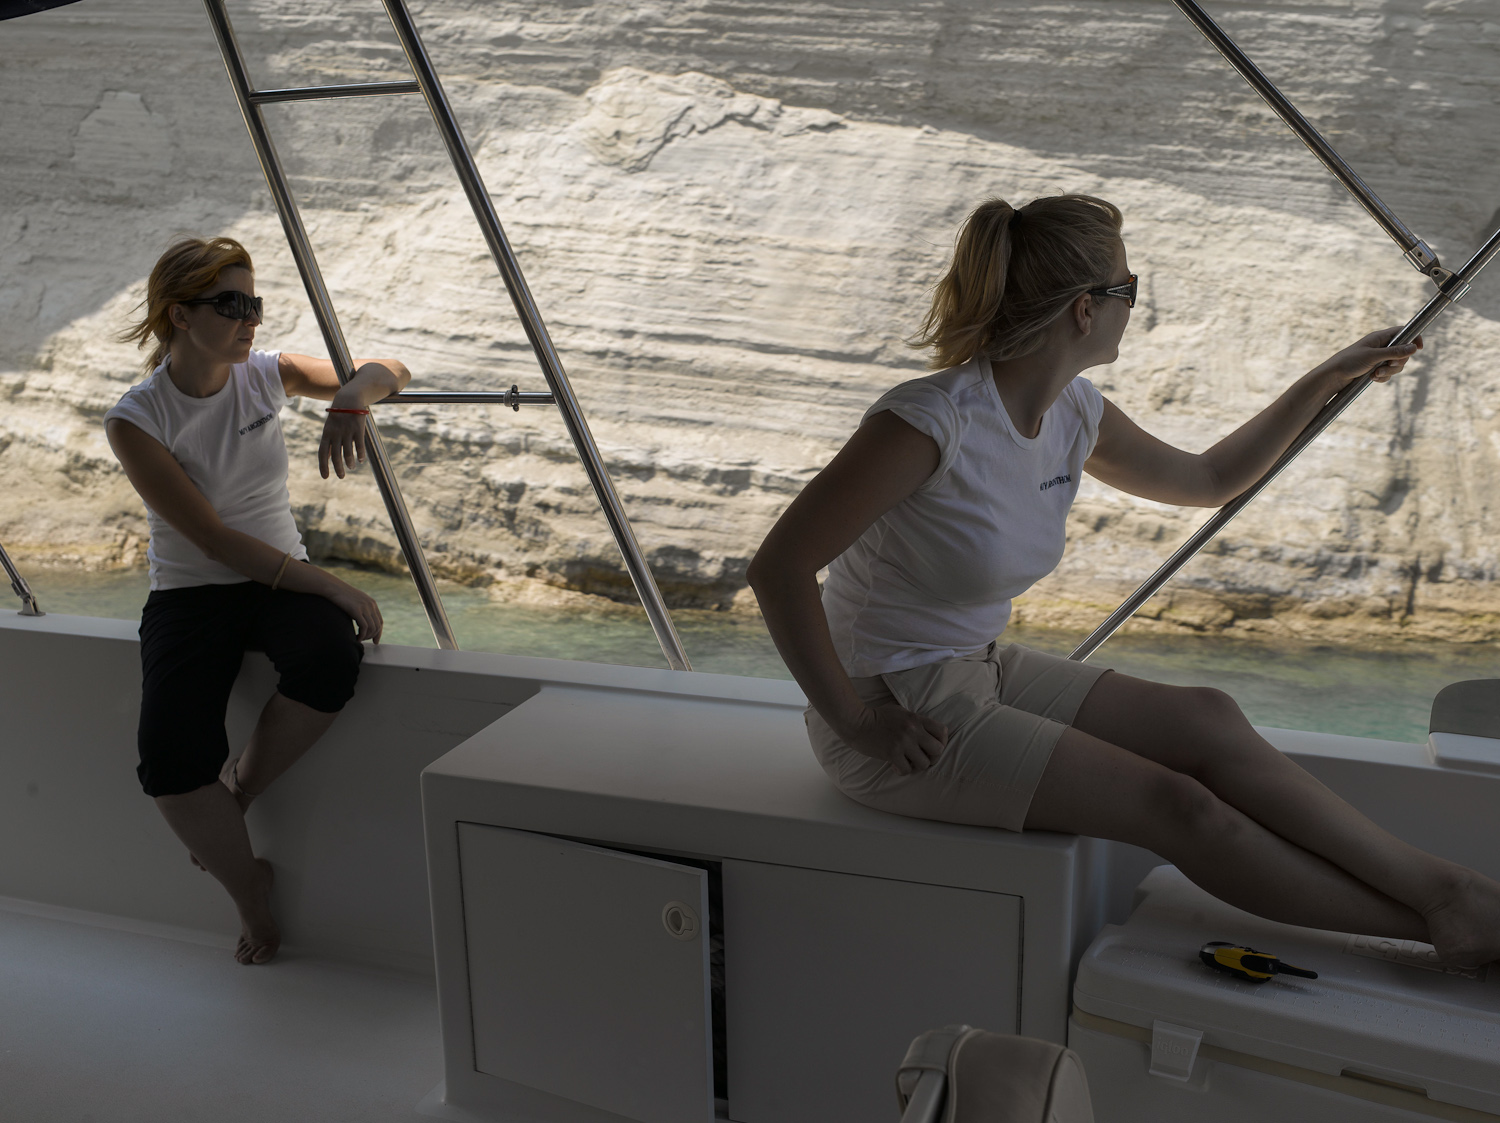 Tina and Darcy - Corinth Canal, 2008